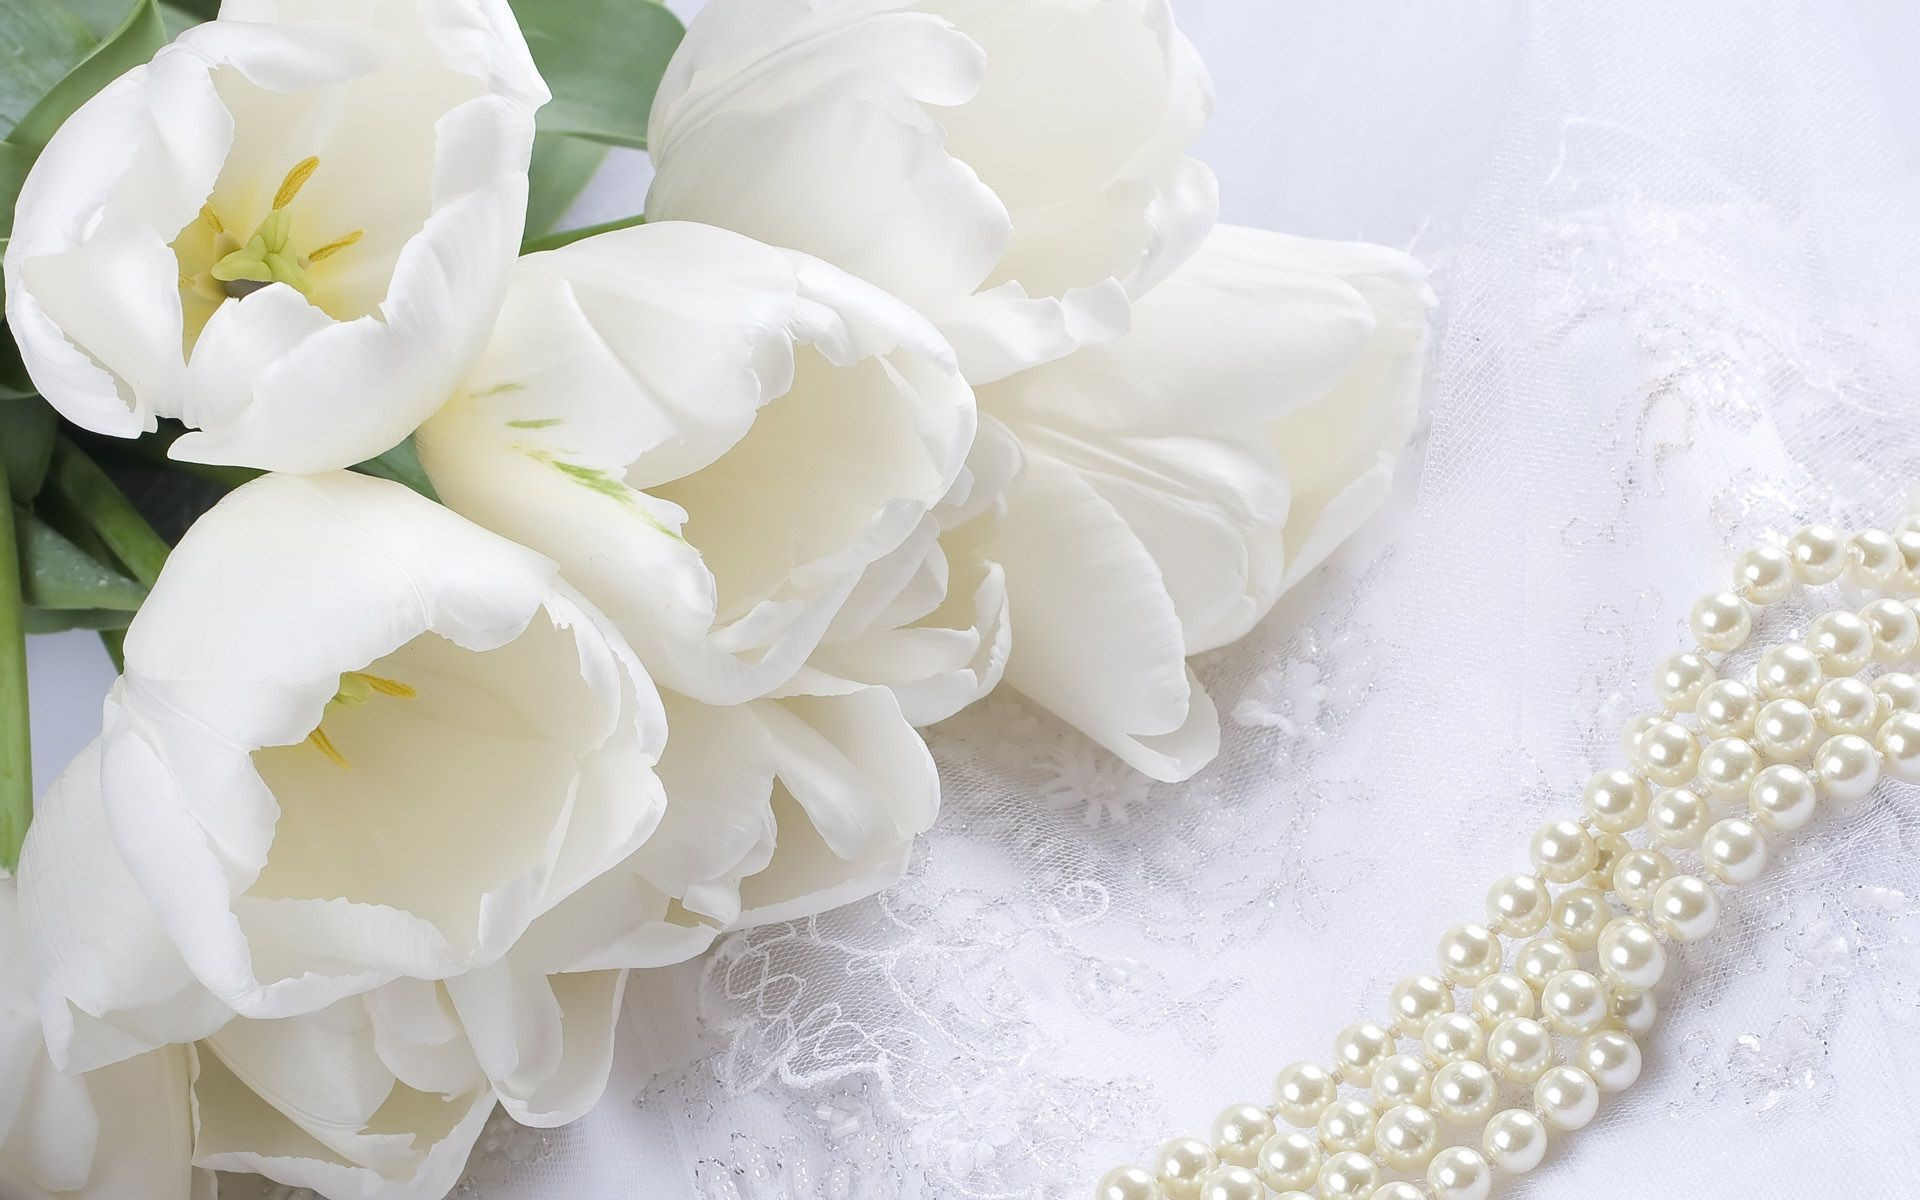 Flowers pearls white lace tulips bouquet beads